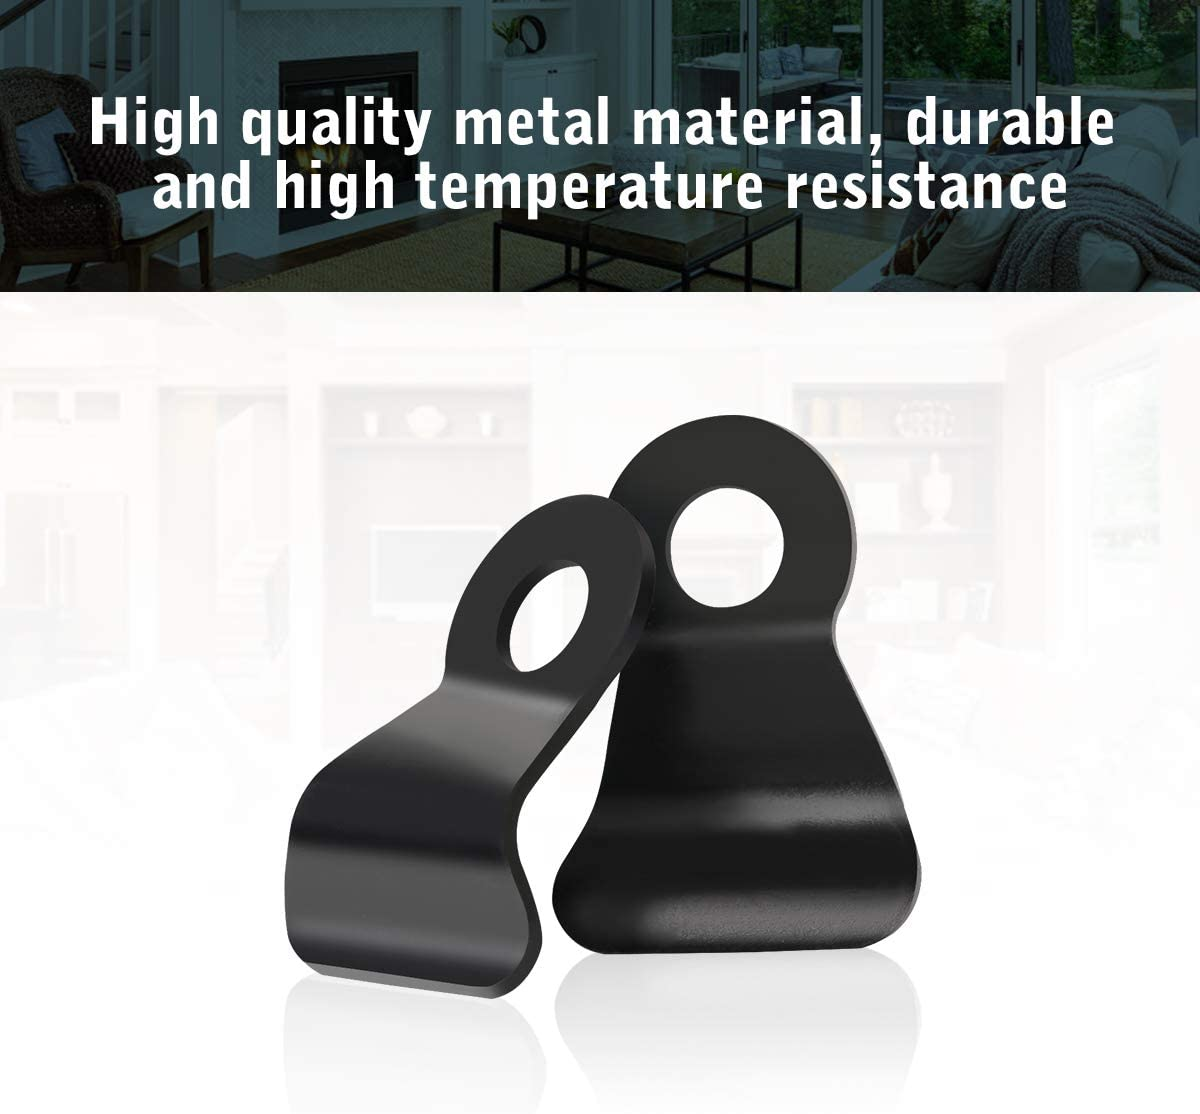 Stove Glass Clips,AIEVE 8 PCS Metal Stove Glass Retaining Clips Multi Fuel Wood Burning Stove Spare Parts for Hold Your Stove Glass Tightly